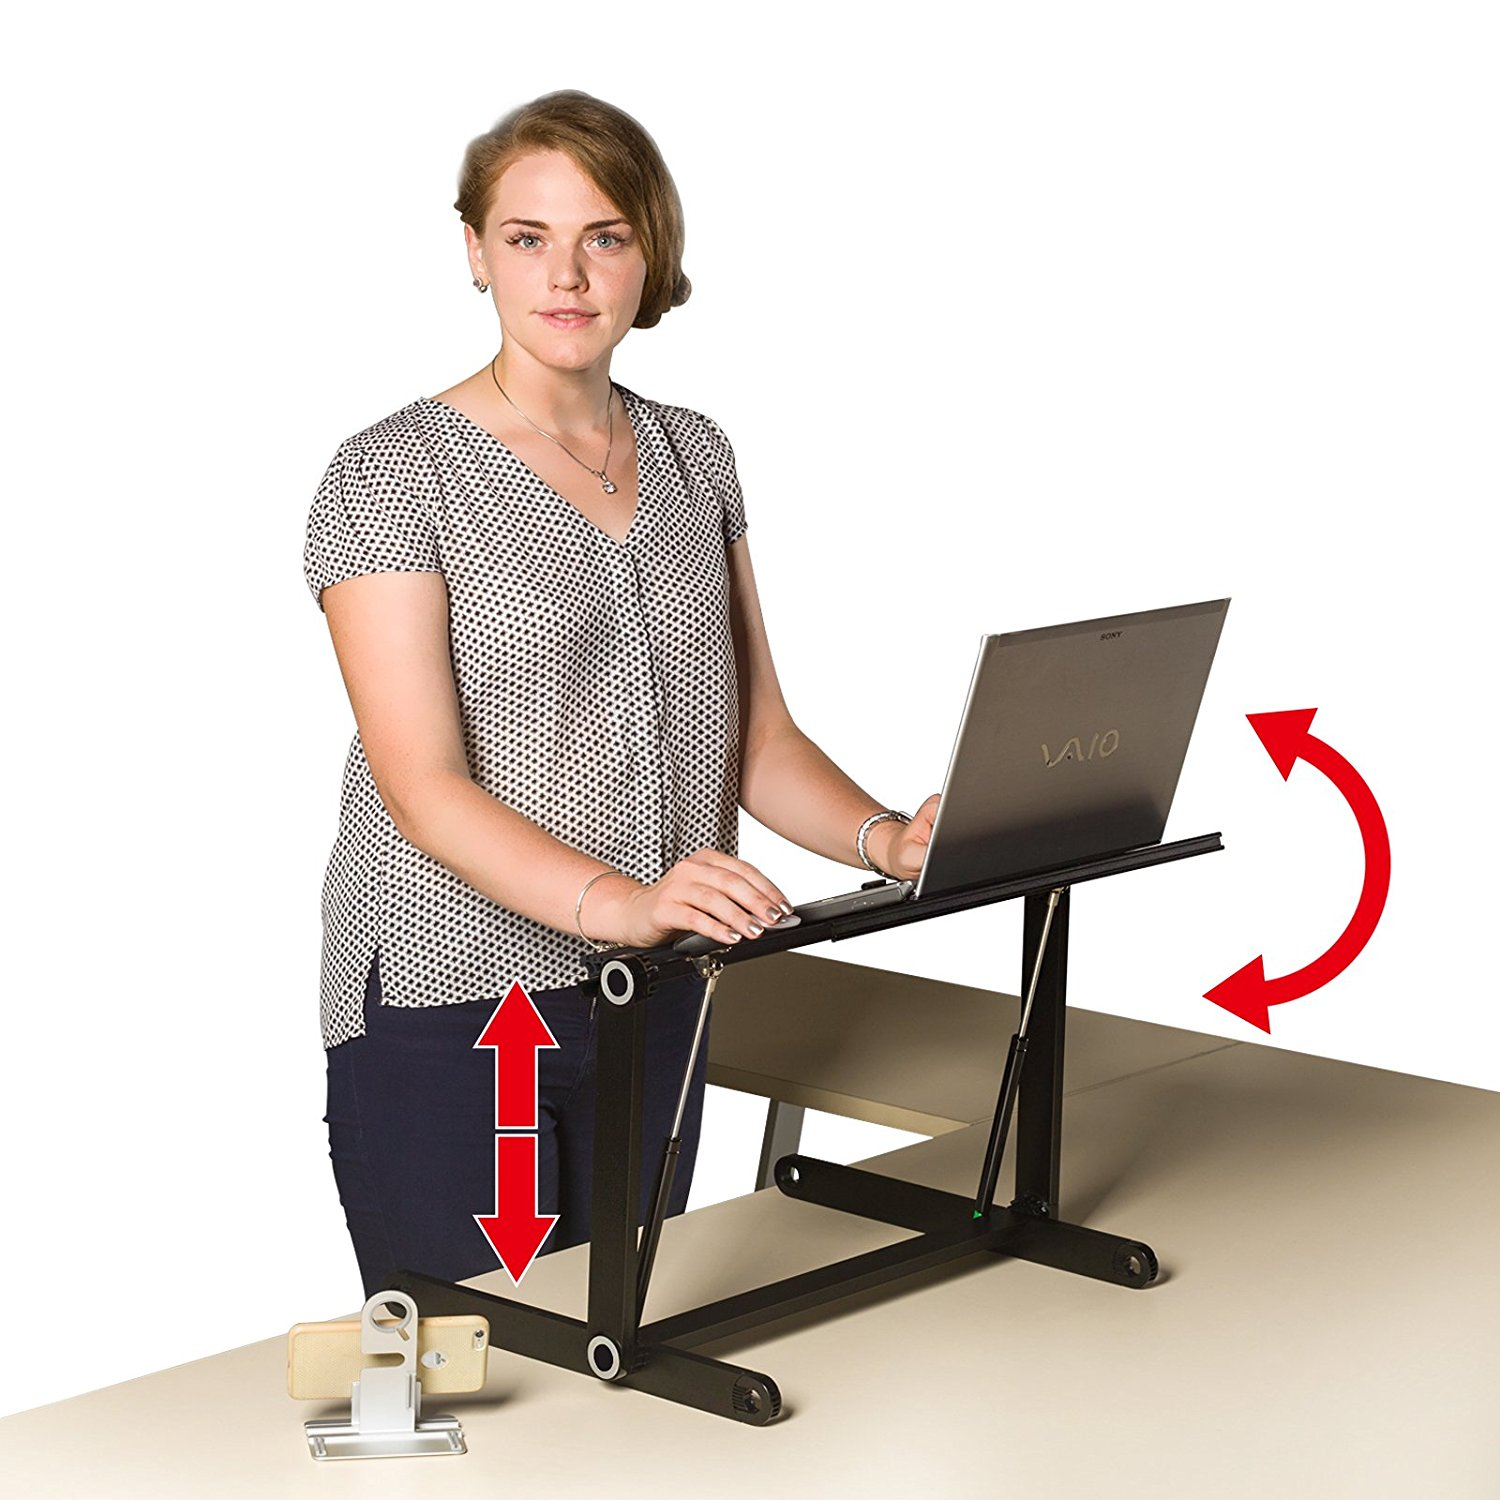 New Adjustable Standing Desk adjustable Stand up Desk folding aluminium computer desk Adjust Monitor Stand